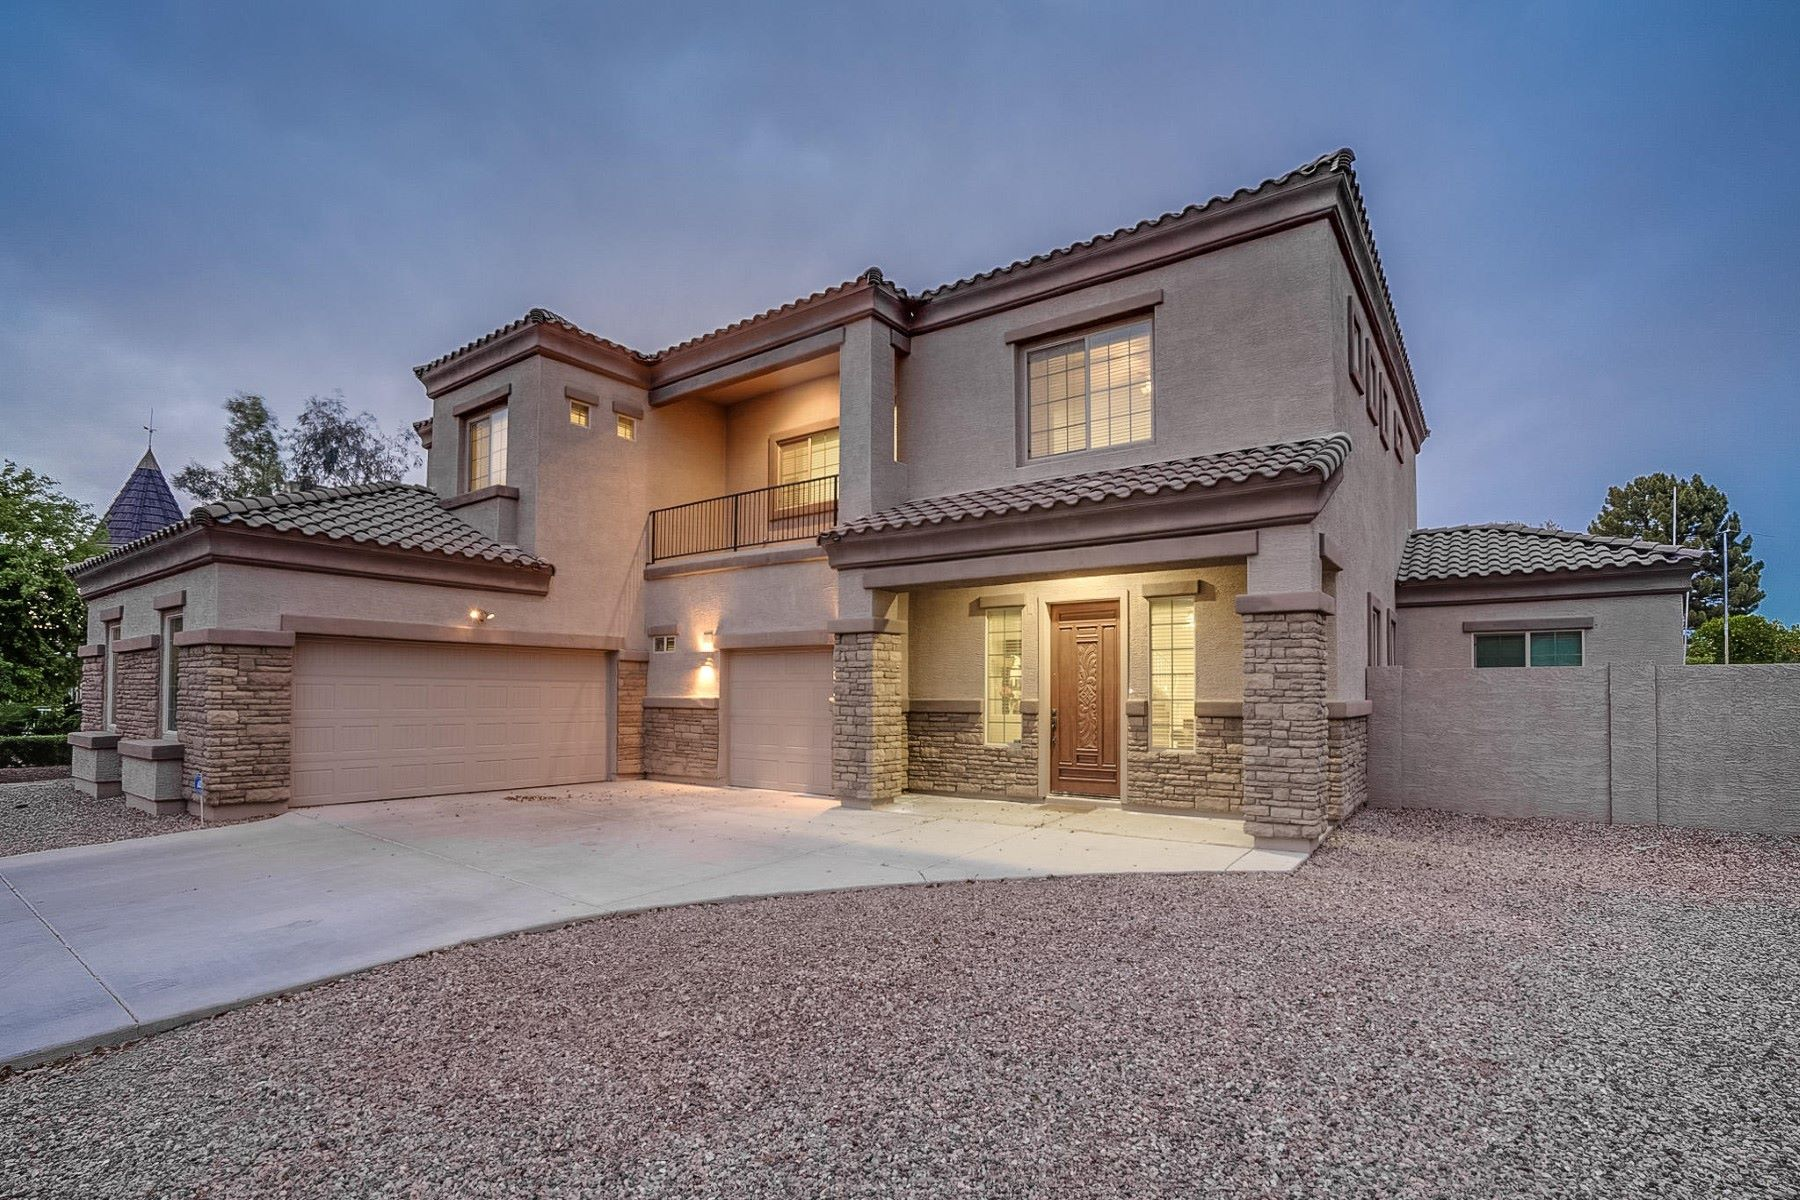 single family homes for Active at Raintree 702 E CARVER RD Tempe, Arizona 85284 United States